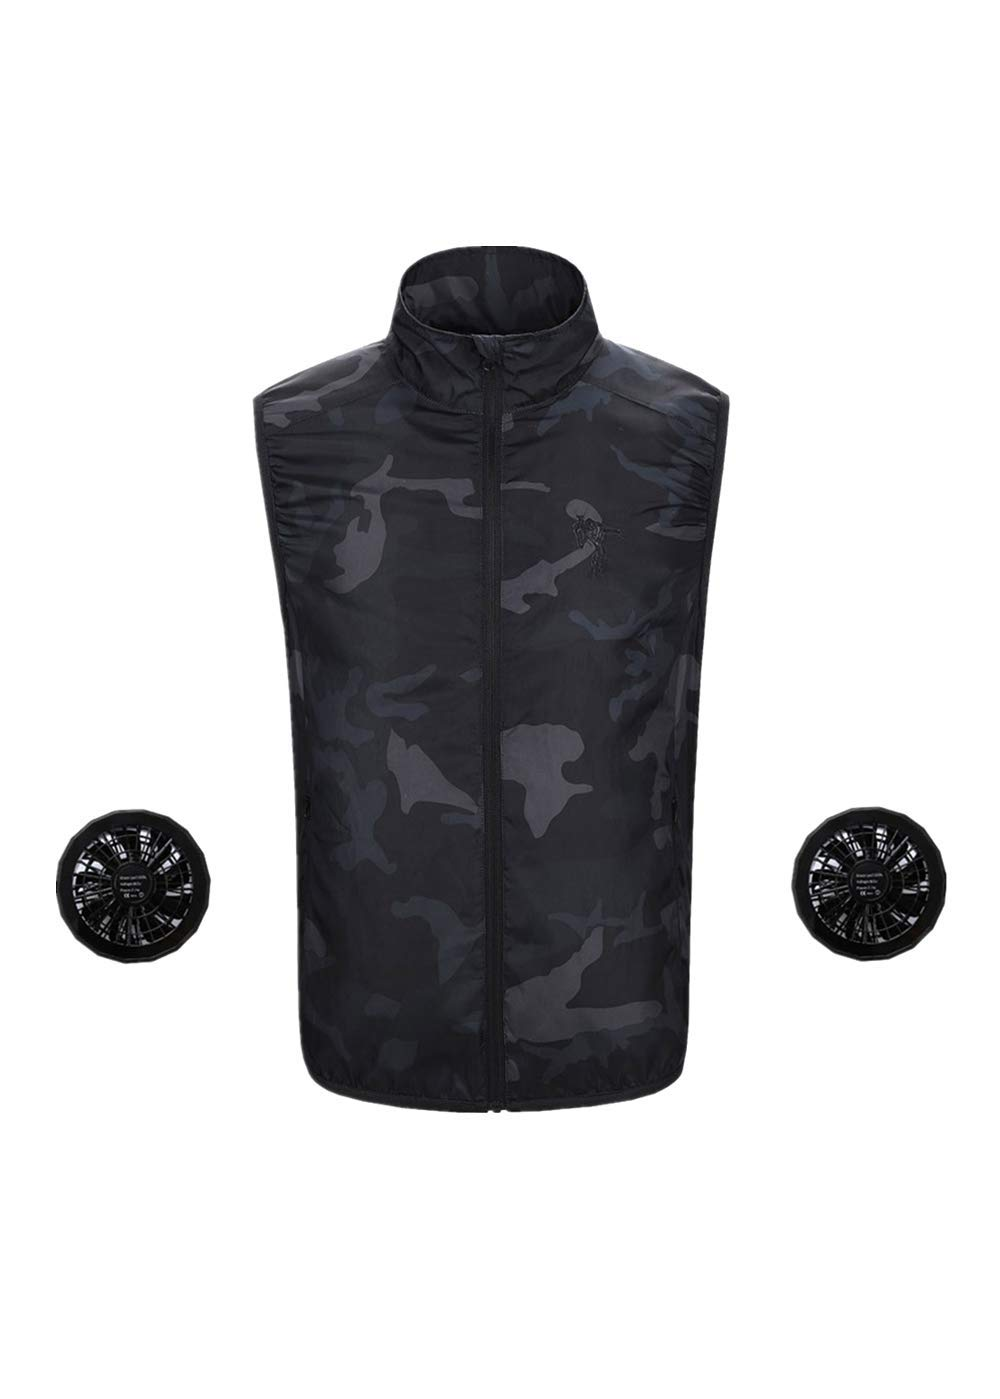 Couple Sun Protection Tops Summer Air Conditioning Cooling Vest Heatstroke Outdoor Sunscreen Quick Dry Fishing Shirts Unisex (3XL, Camouflage)